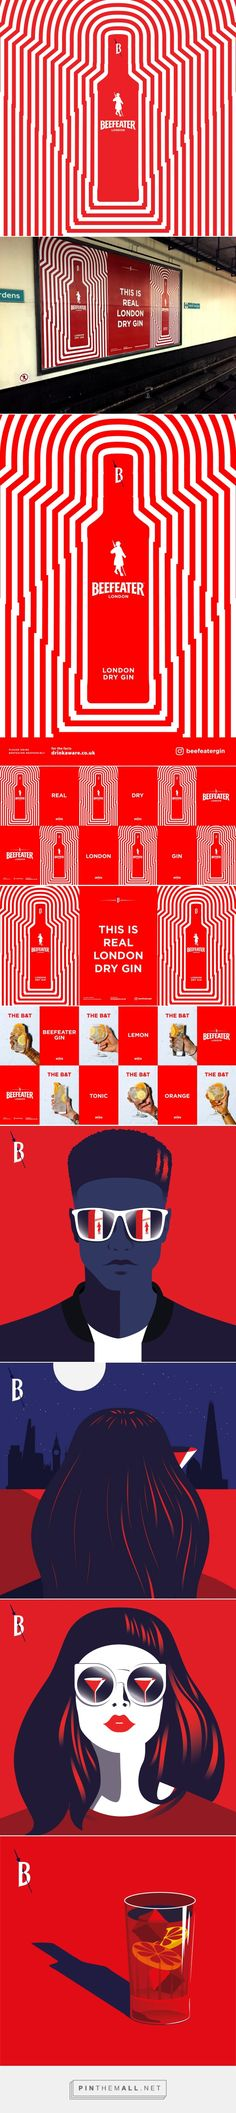 Beefeater Outdoor Advert By Impero: Gin | Ads of the World™... - a grouped images picture - Pin Them All